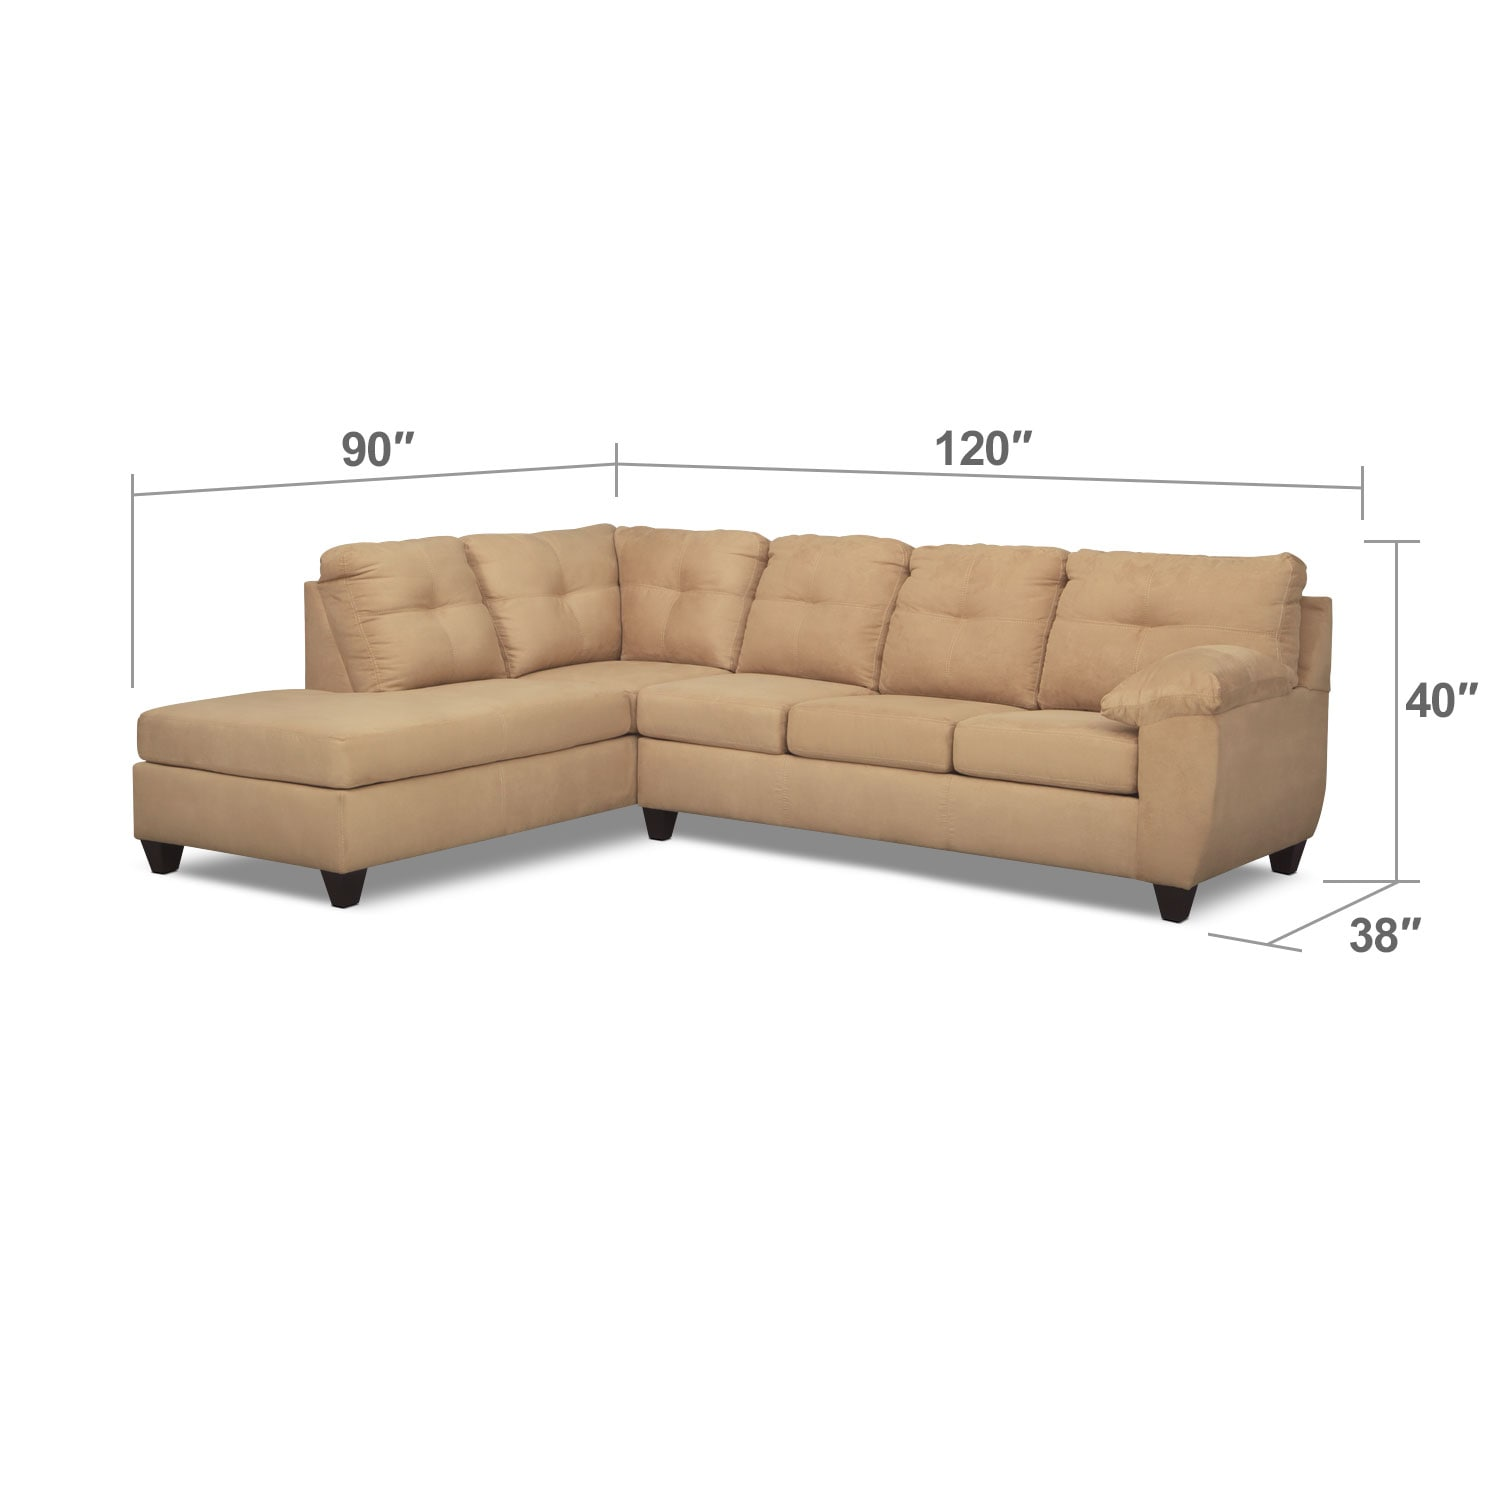 Living Room Furniture - Rialto Camel 2 Pc. Memory Foam Sleeper Sectional with Left-Facing Chaise